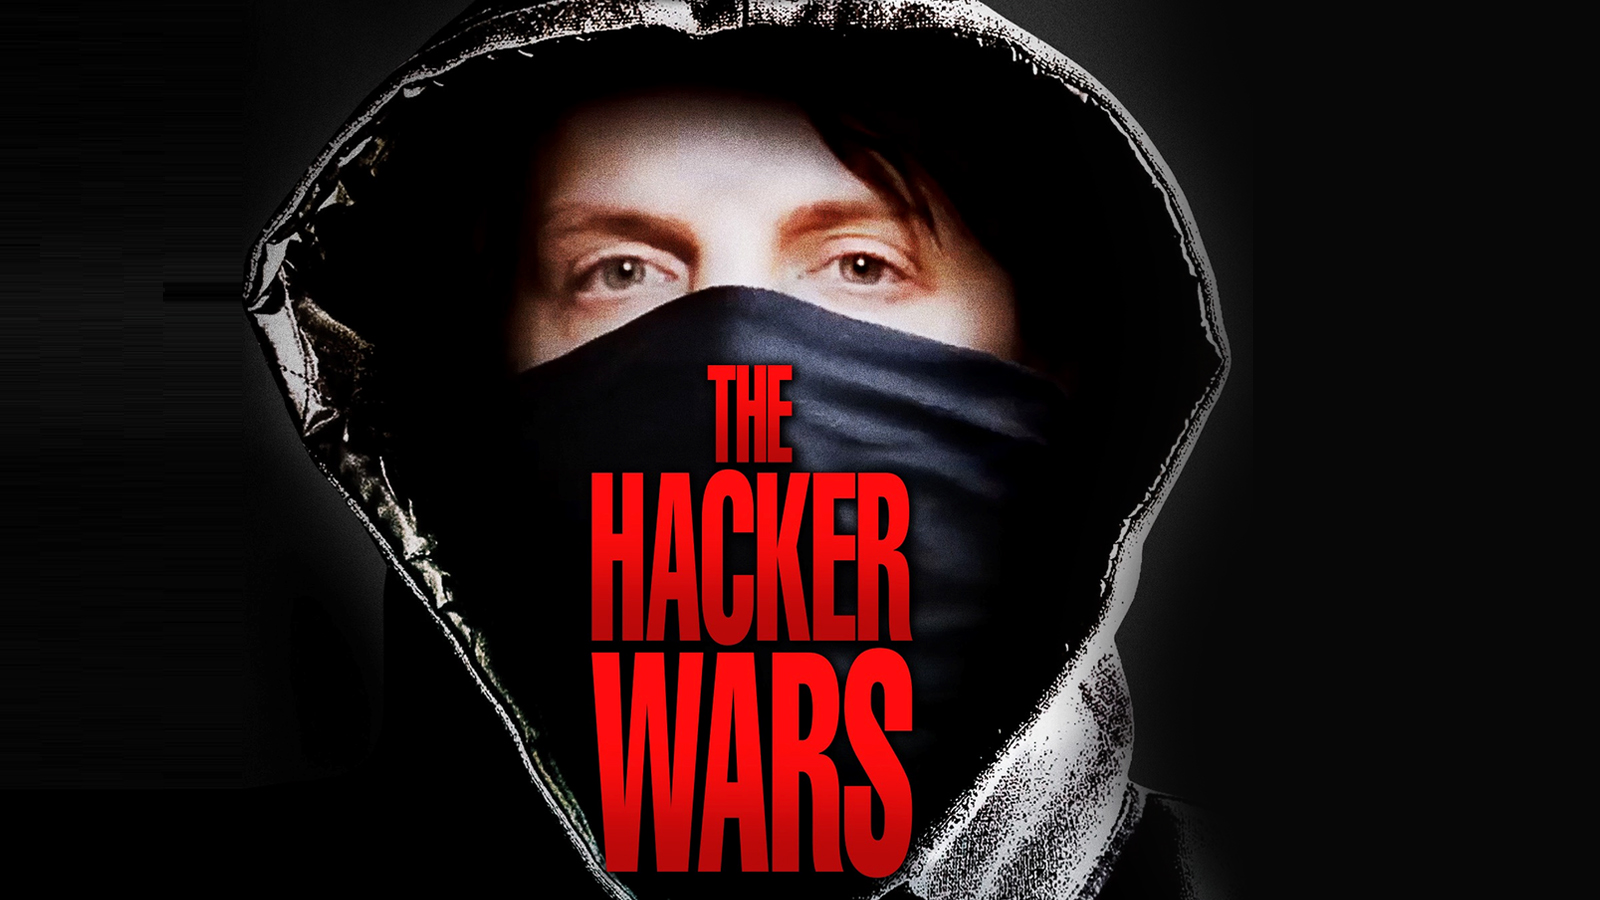 the hacker wars